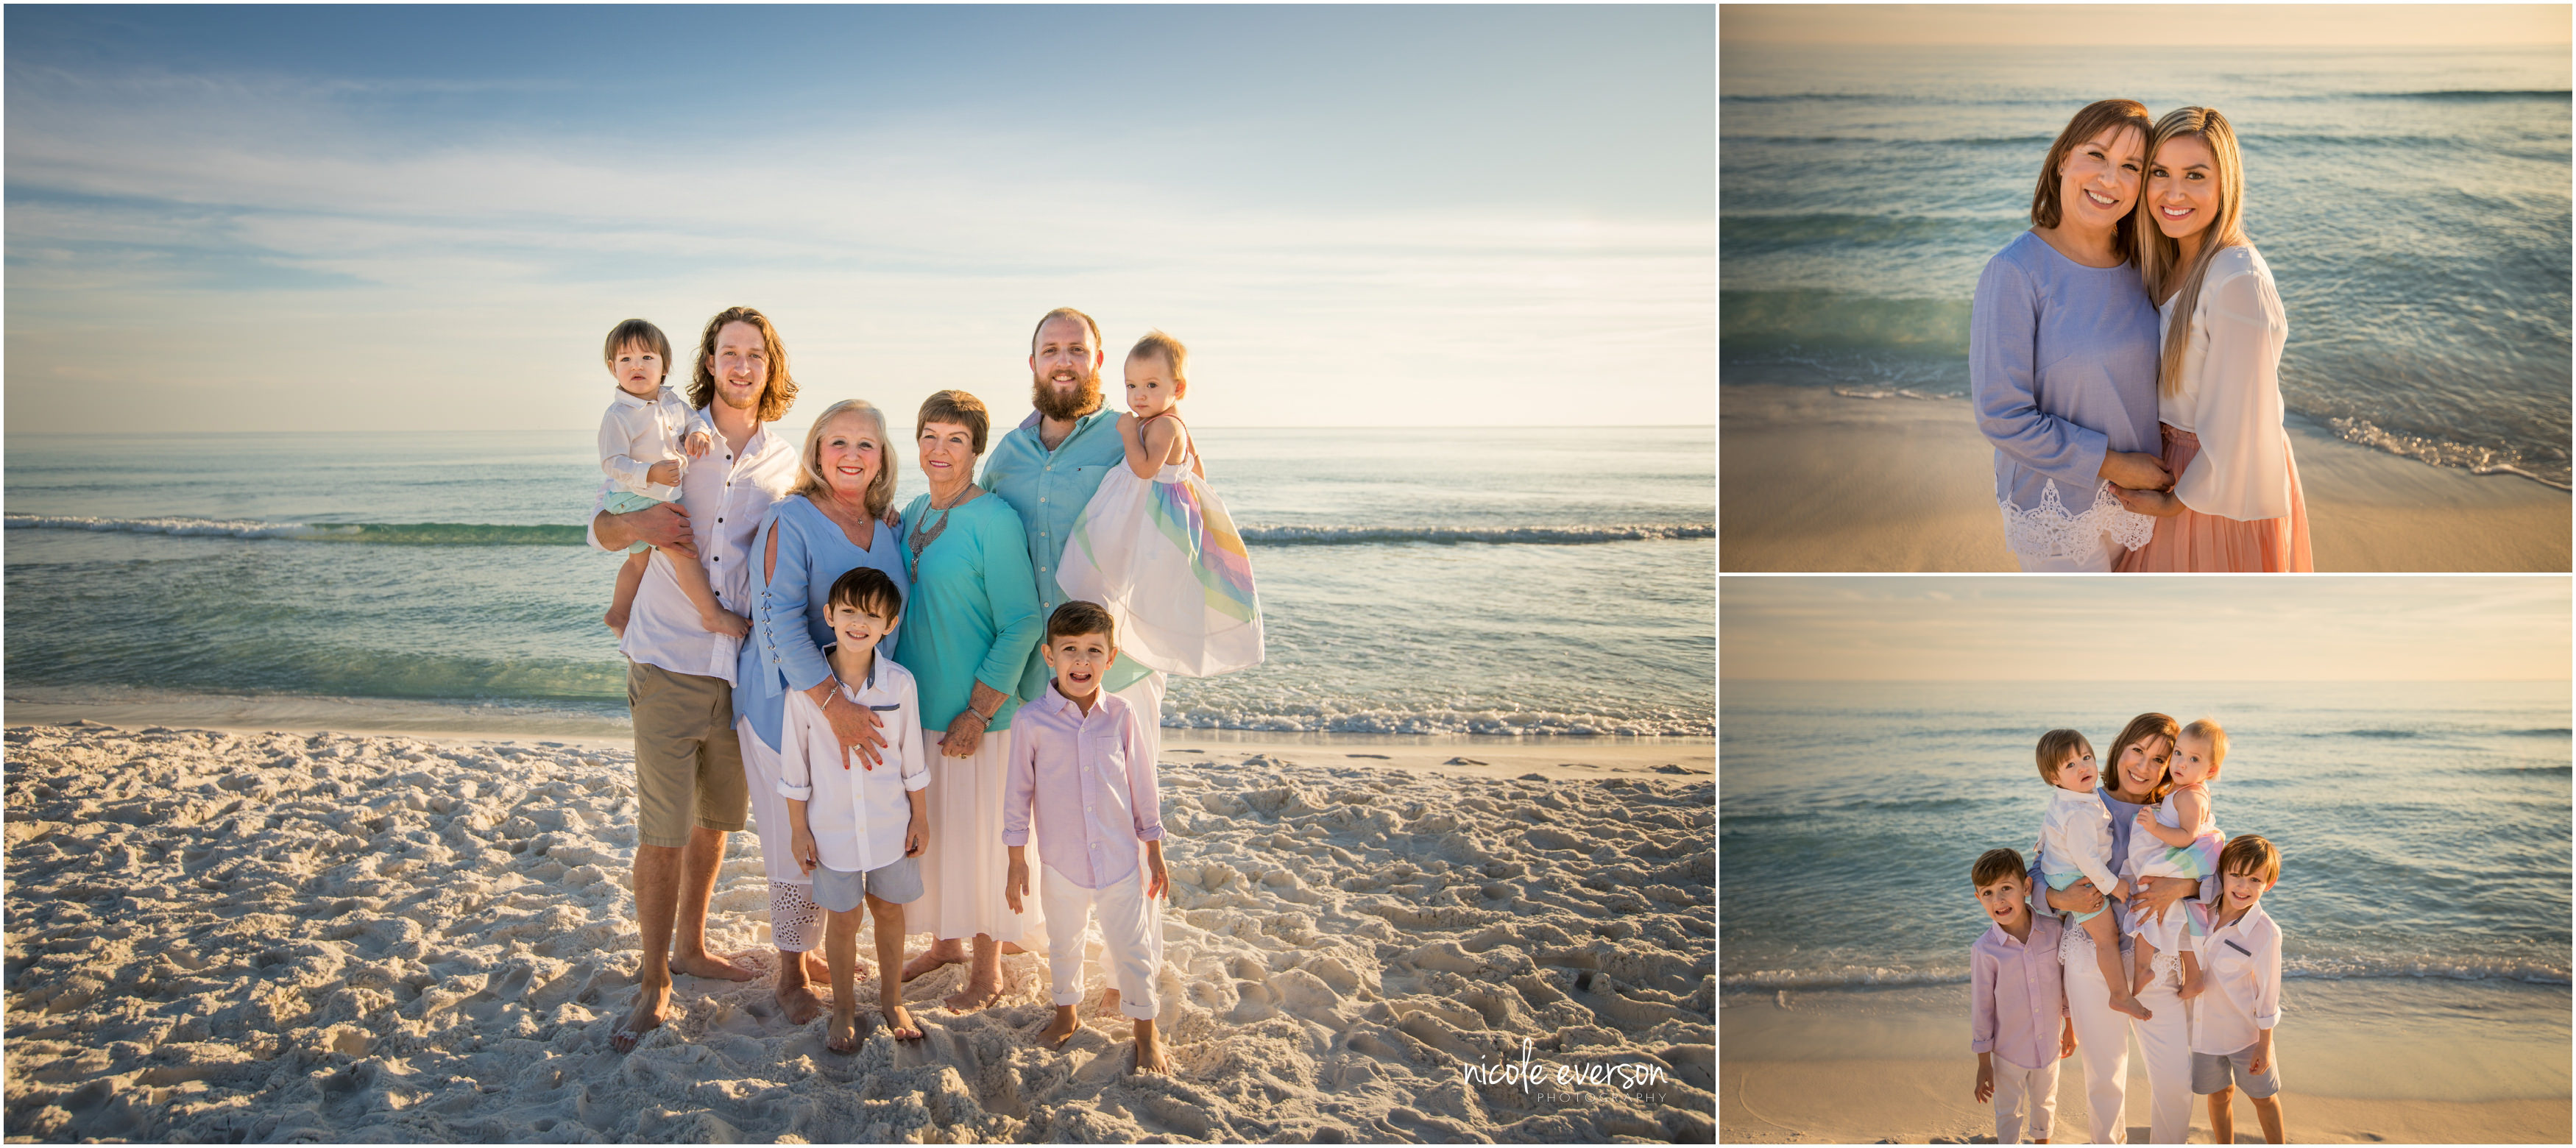 sunset beach photography session